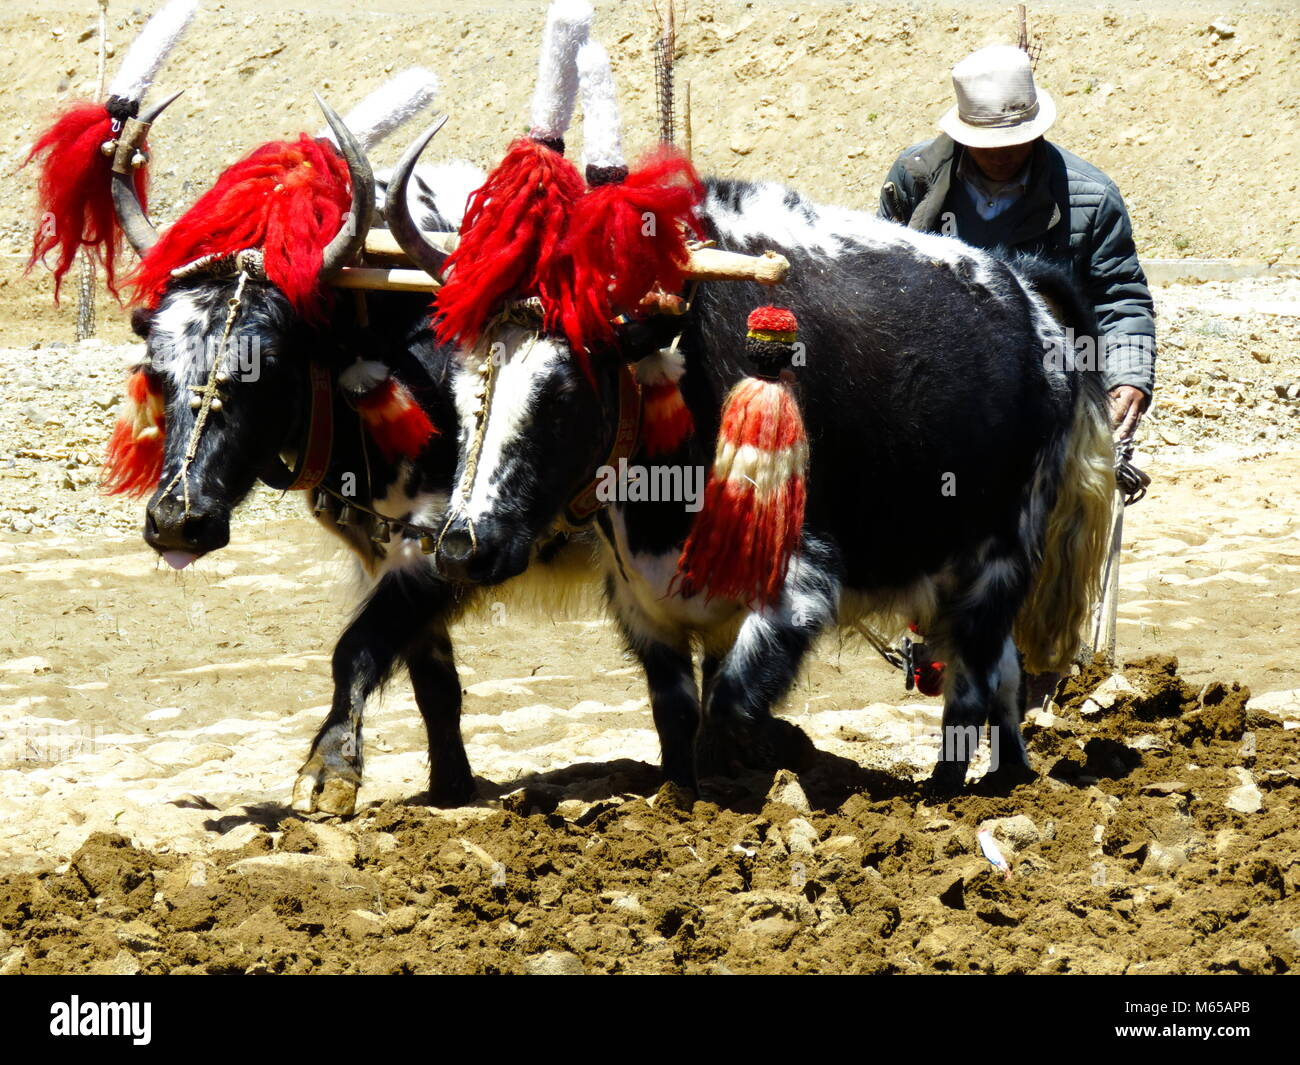 Ploughing with Yaks on the road between Shigatse and Gyantse in Tsang Province, Tibet - Stock Image